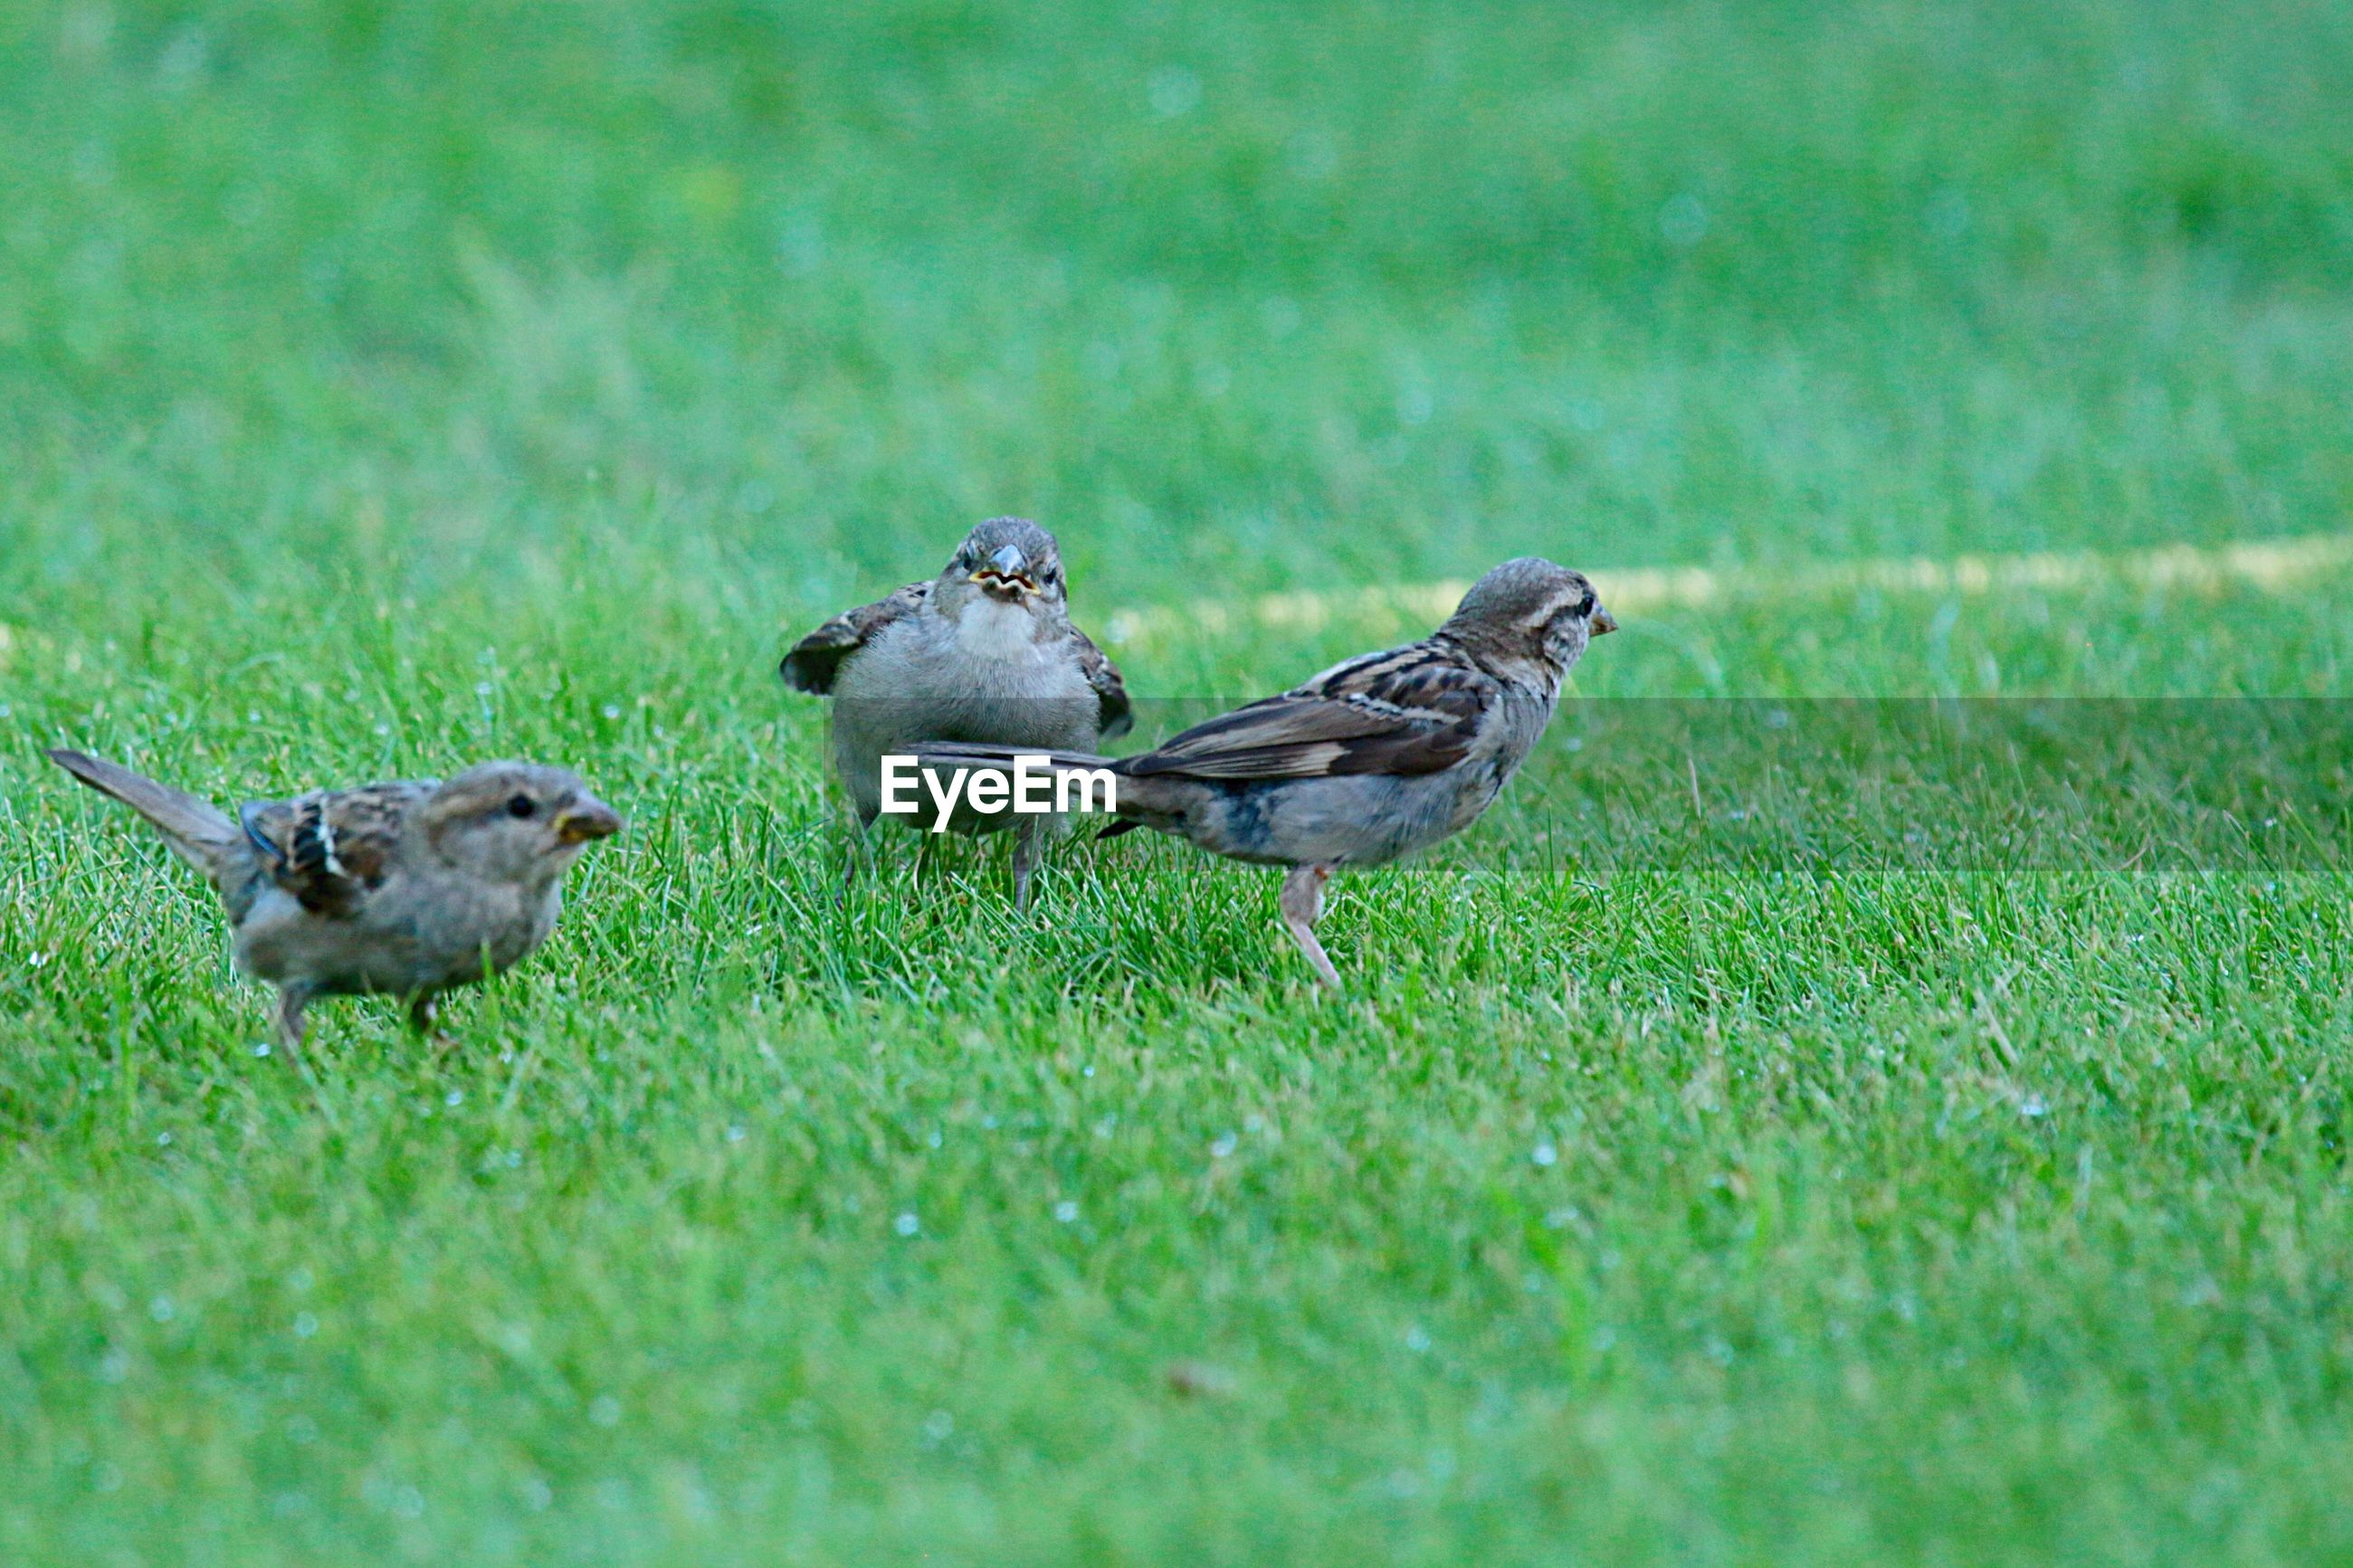 Three sparrows on green grass